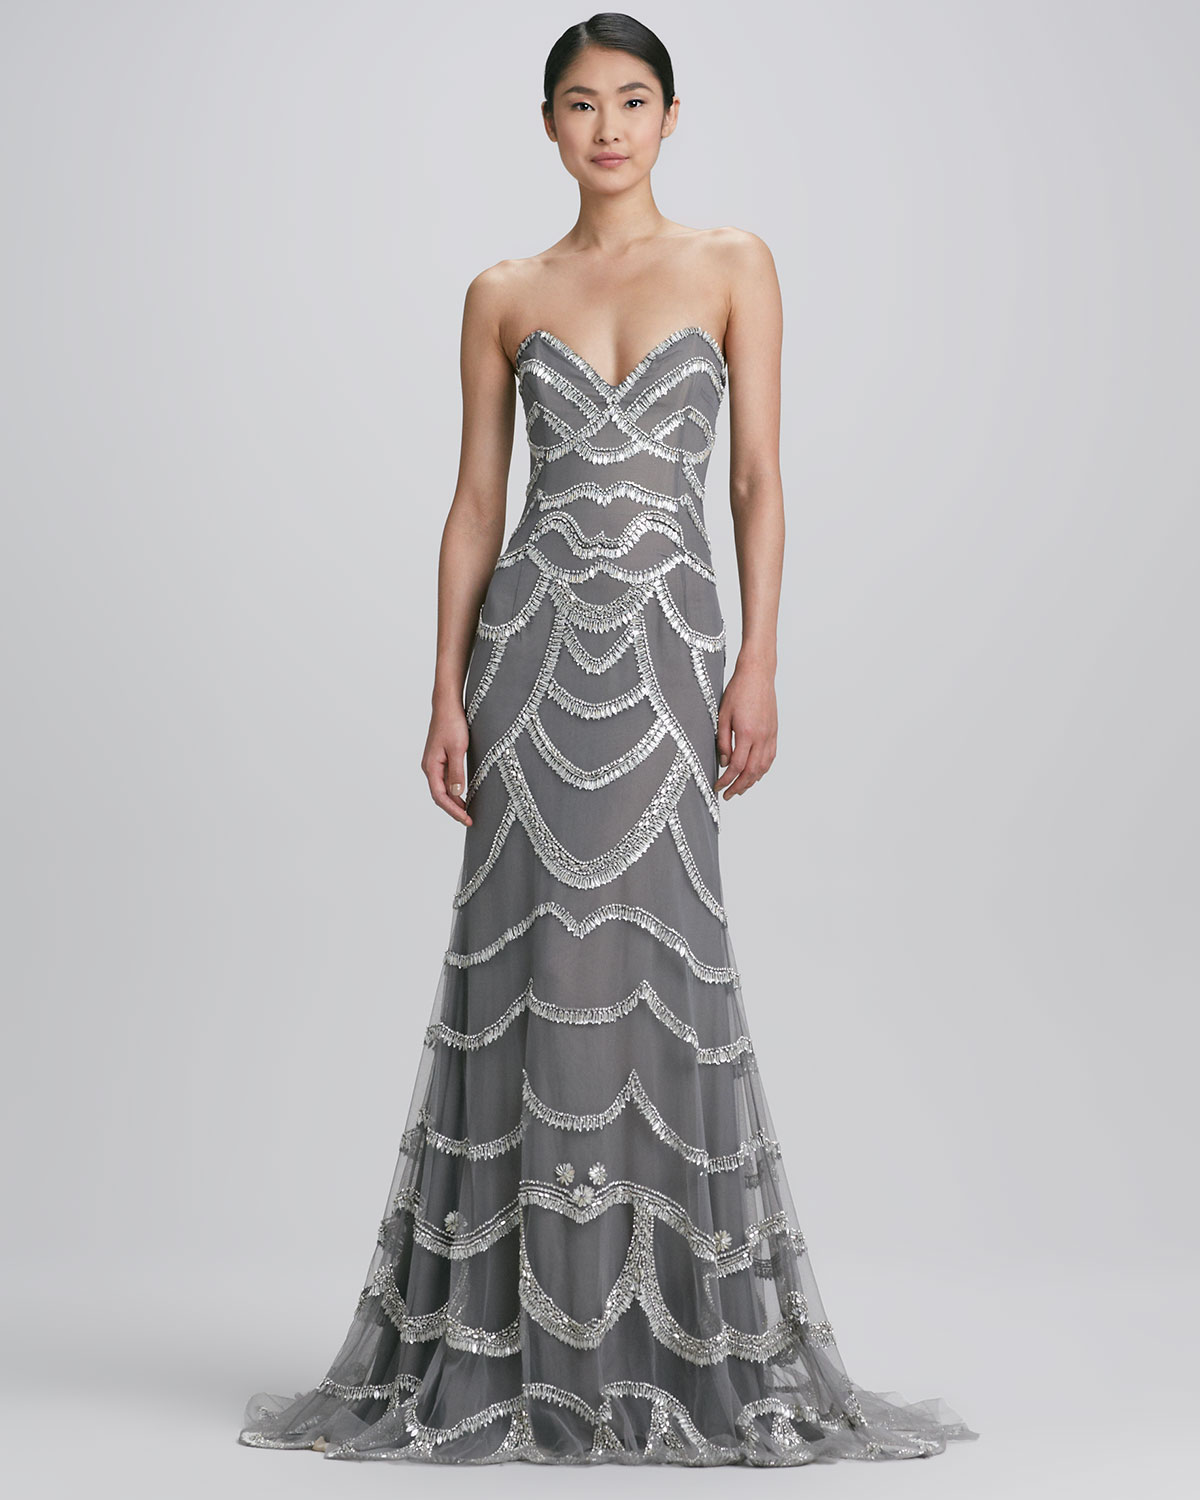 94e6c42d4ff13 Naeem Khan Beaded Strapless Gown in Metallic - Lyst